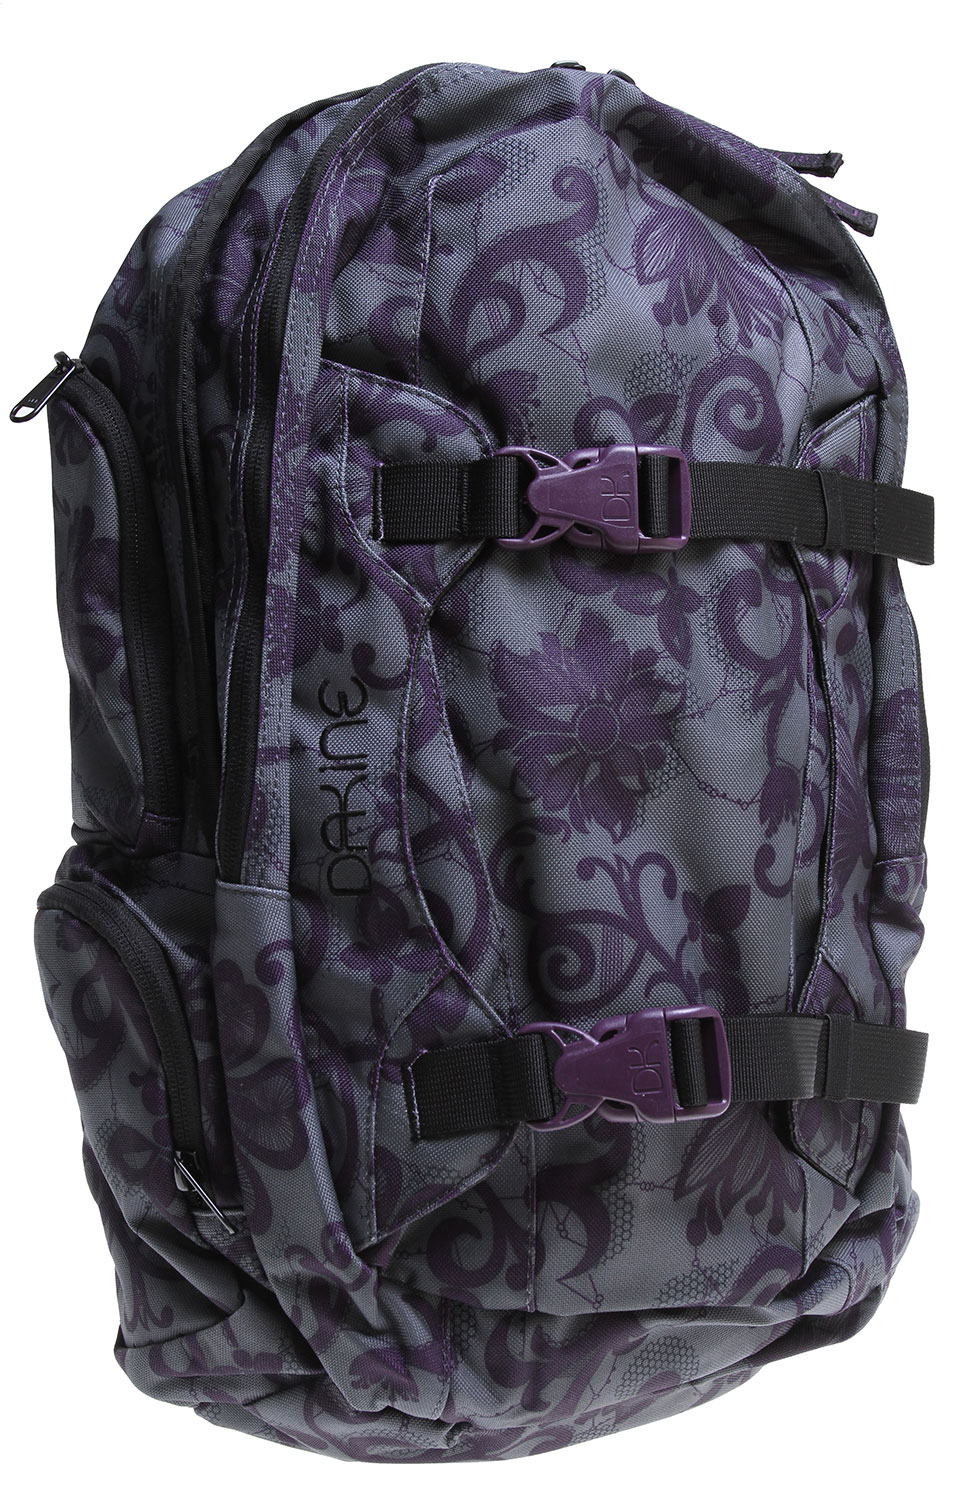 "Surf Key Features of the Dakine Mission Backpack 25L: Vertical board carry straps Fleece lined goggle pocket Organizer pocket Fleece lined sunglass pocket Padded laptop sleeve Fits most 15"" laptops Padded waist belt Adjustable sternum strap 1500 cu. in. [ 25L ] 21 x 11 x 8"" [ 53 x 28 x 20cm ] 2 lbs. [ .9kg ] Materials 600D Polyester - $48.95"